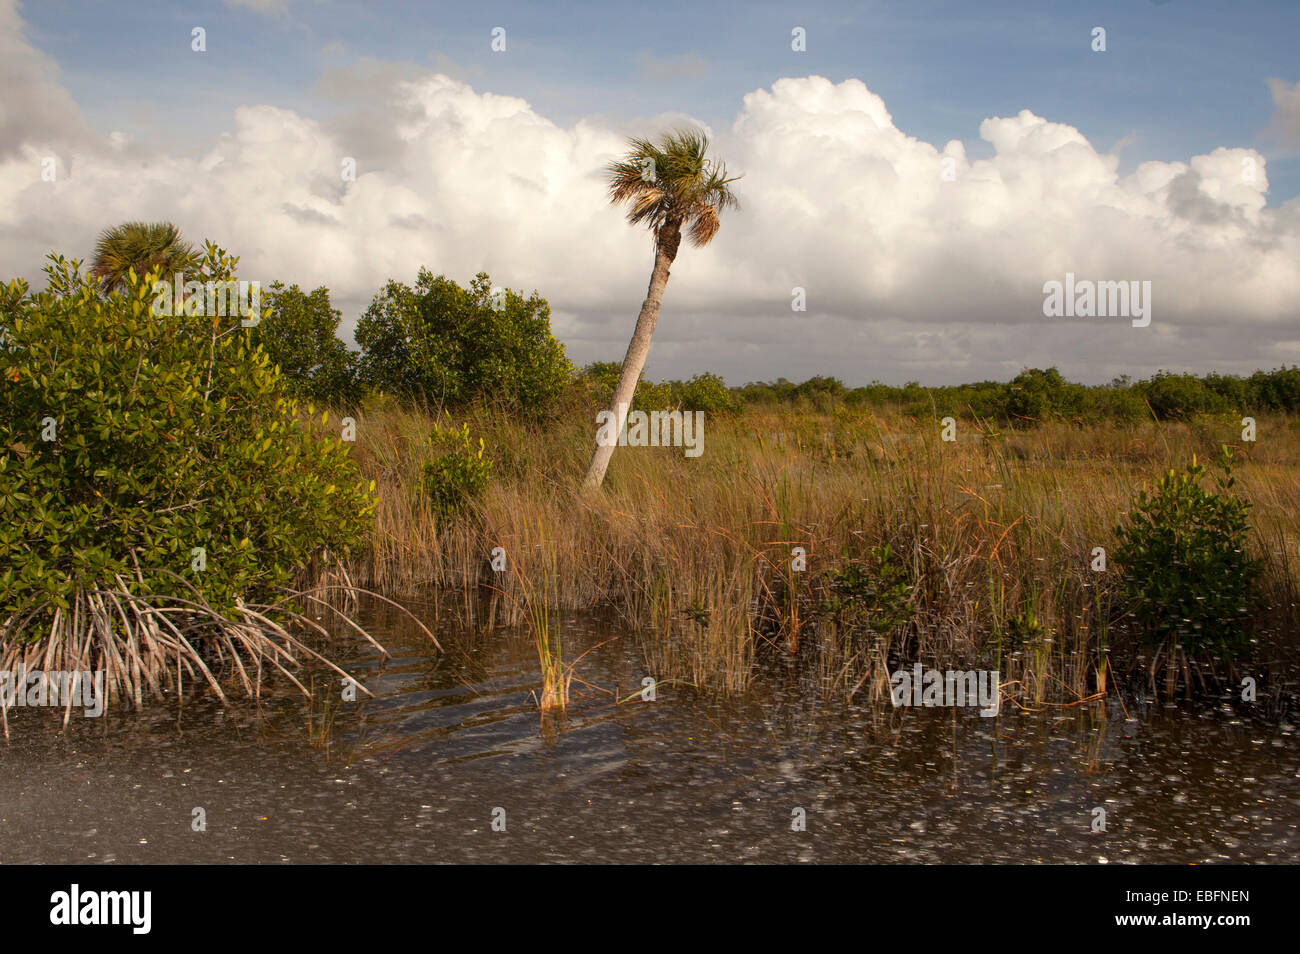 Sawgrass in the Everglades during an airboat tour near Everglades City on the Tamiami Trail in South Florida. - Stock Image